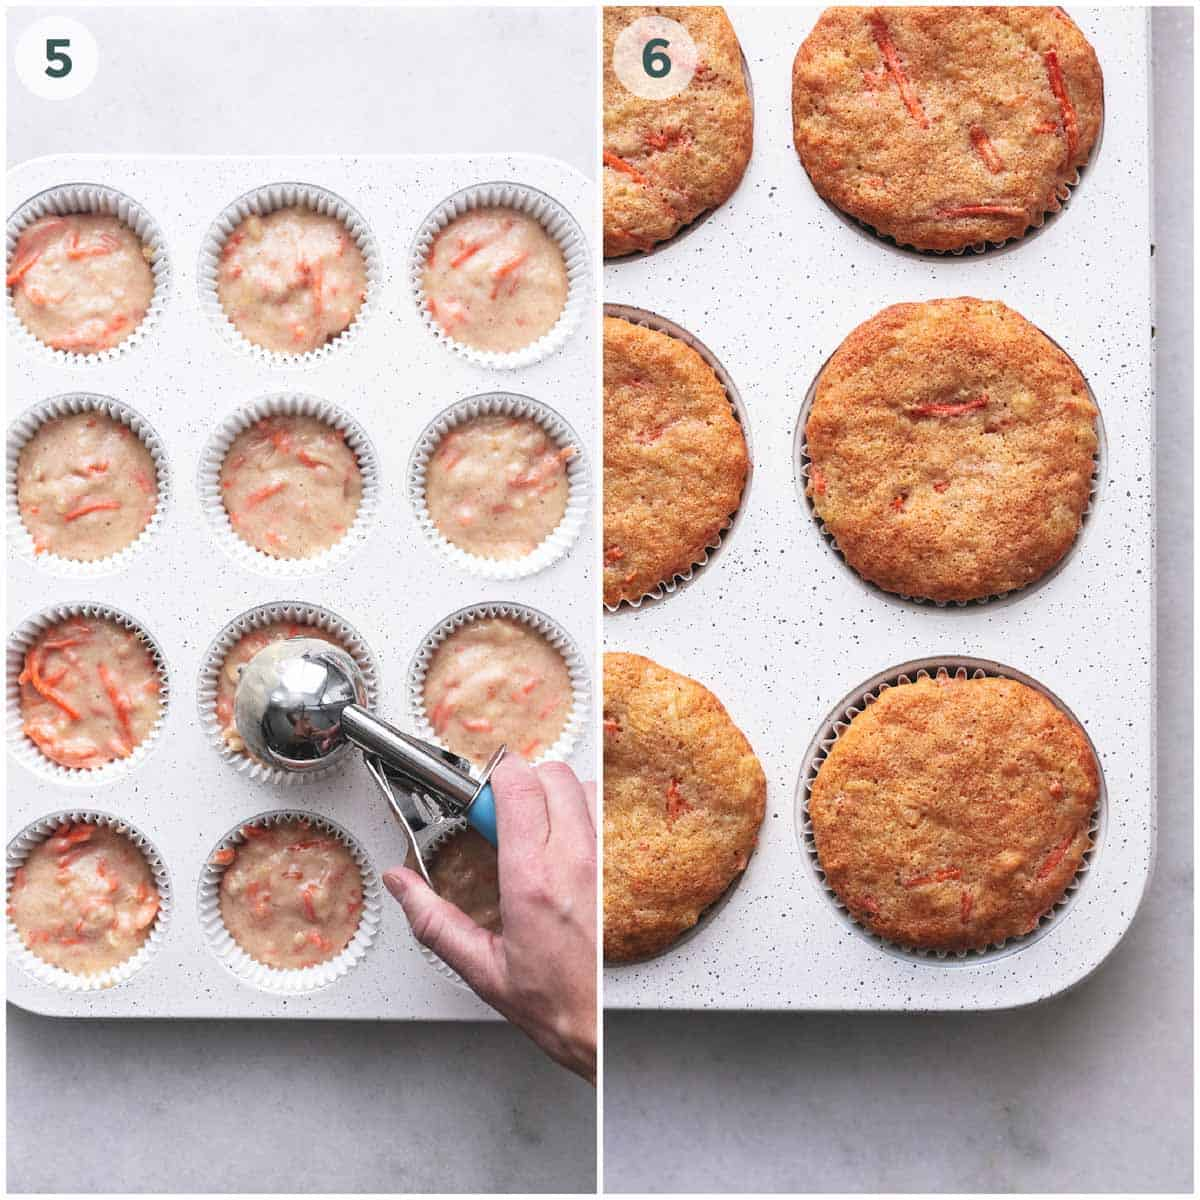 two side by side images showing cupcake batter and baked cupcakes in muffin tin